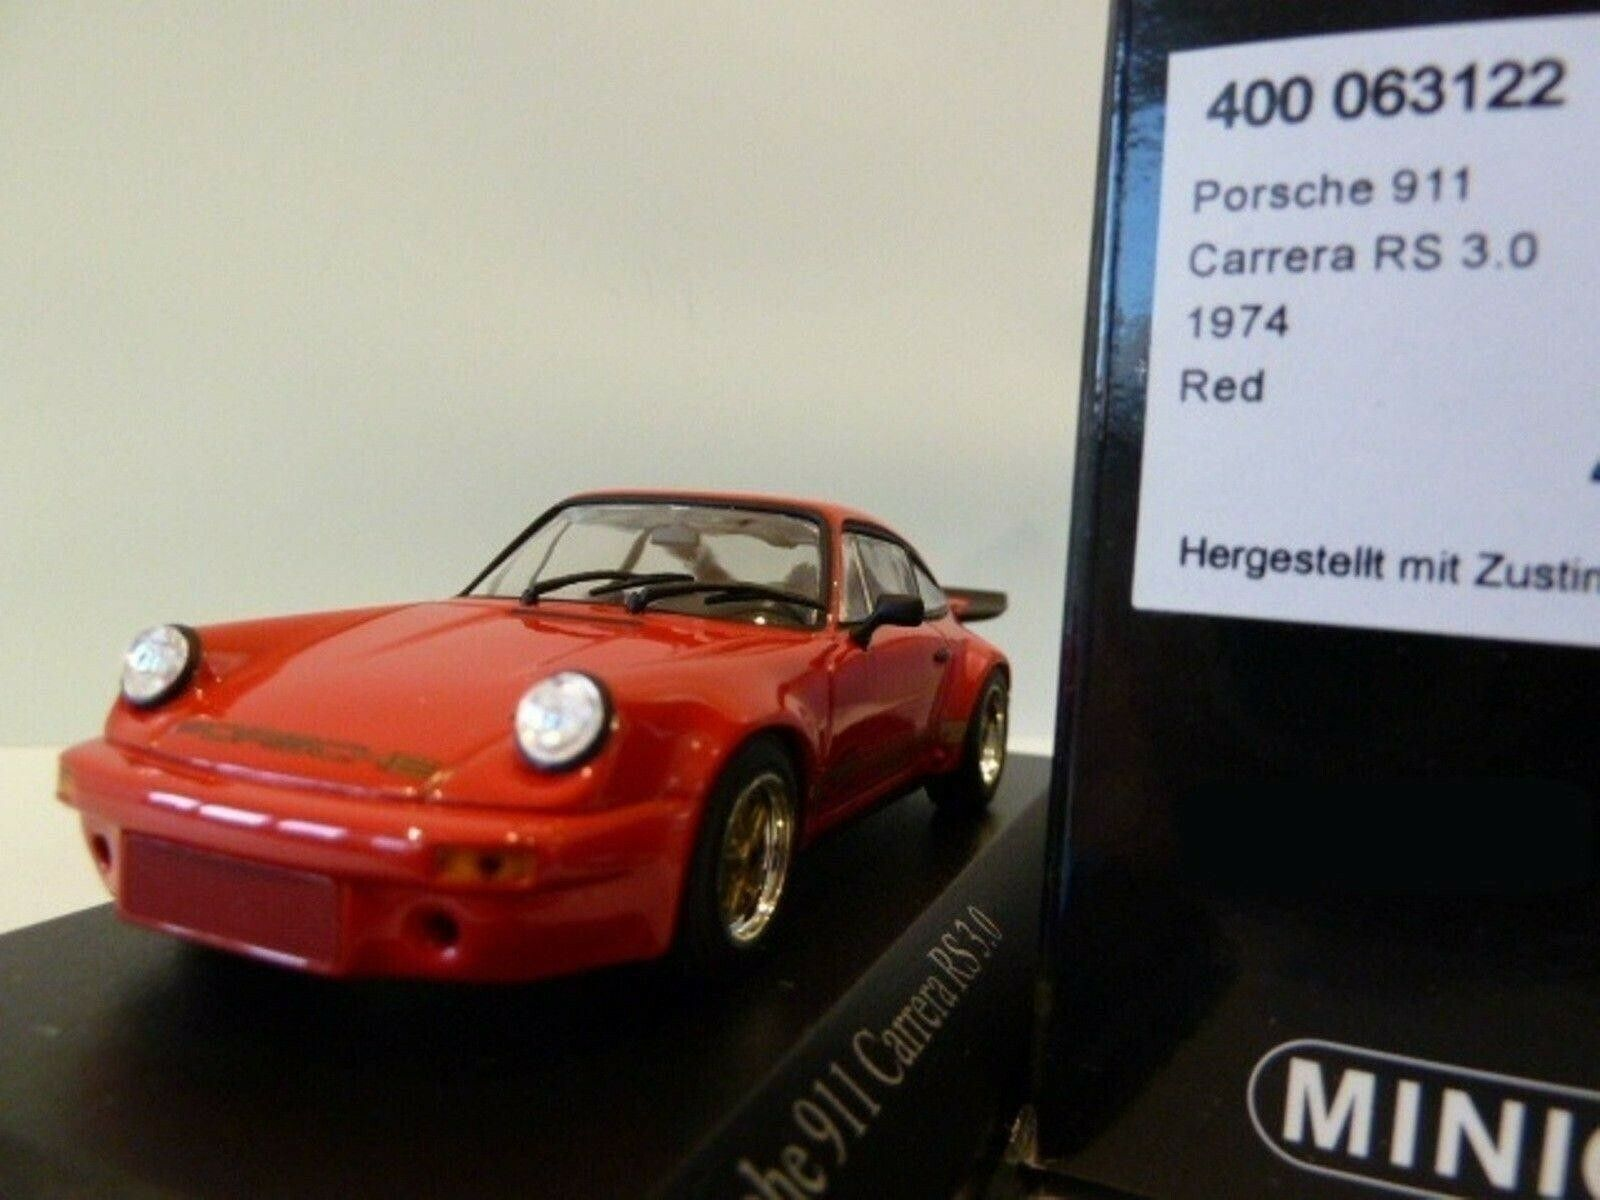 WOW EXTREMELY RARE Porsche 911 RSR 3.0 Red gold 1974 1 43 Minichamps-GT2 R S T